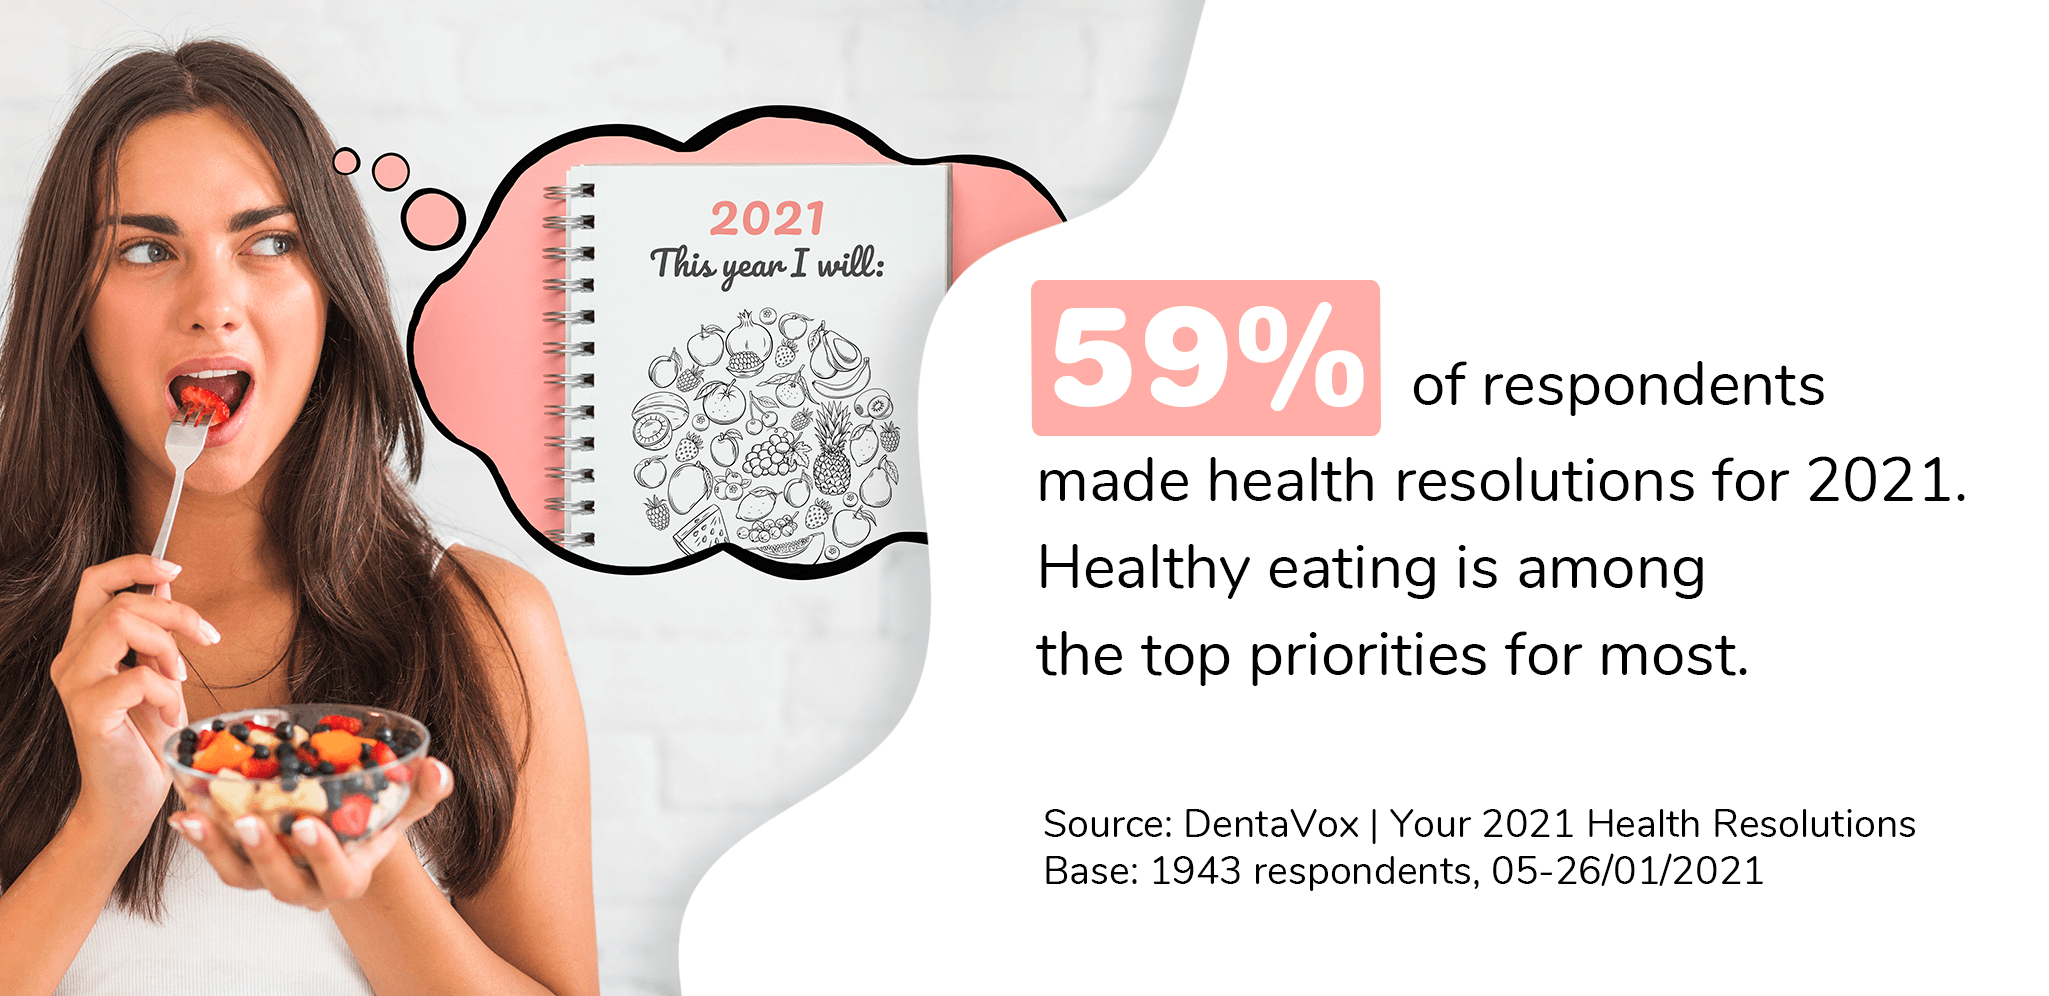 Dentavox research 2021 health resolutions soc (1)